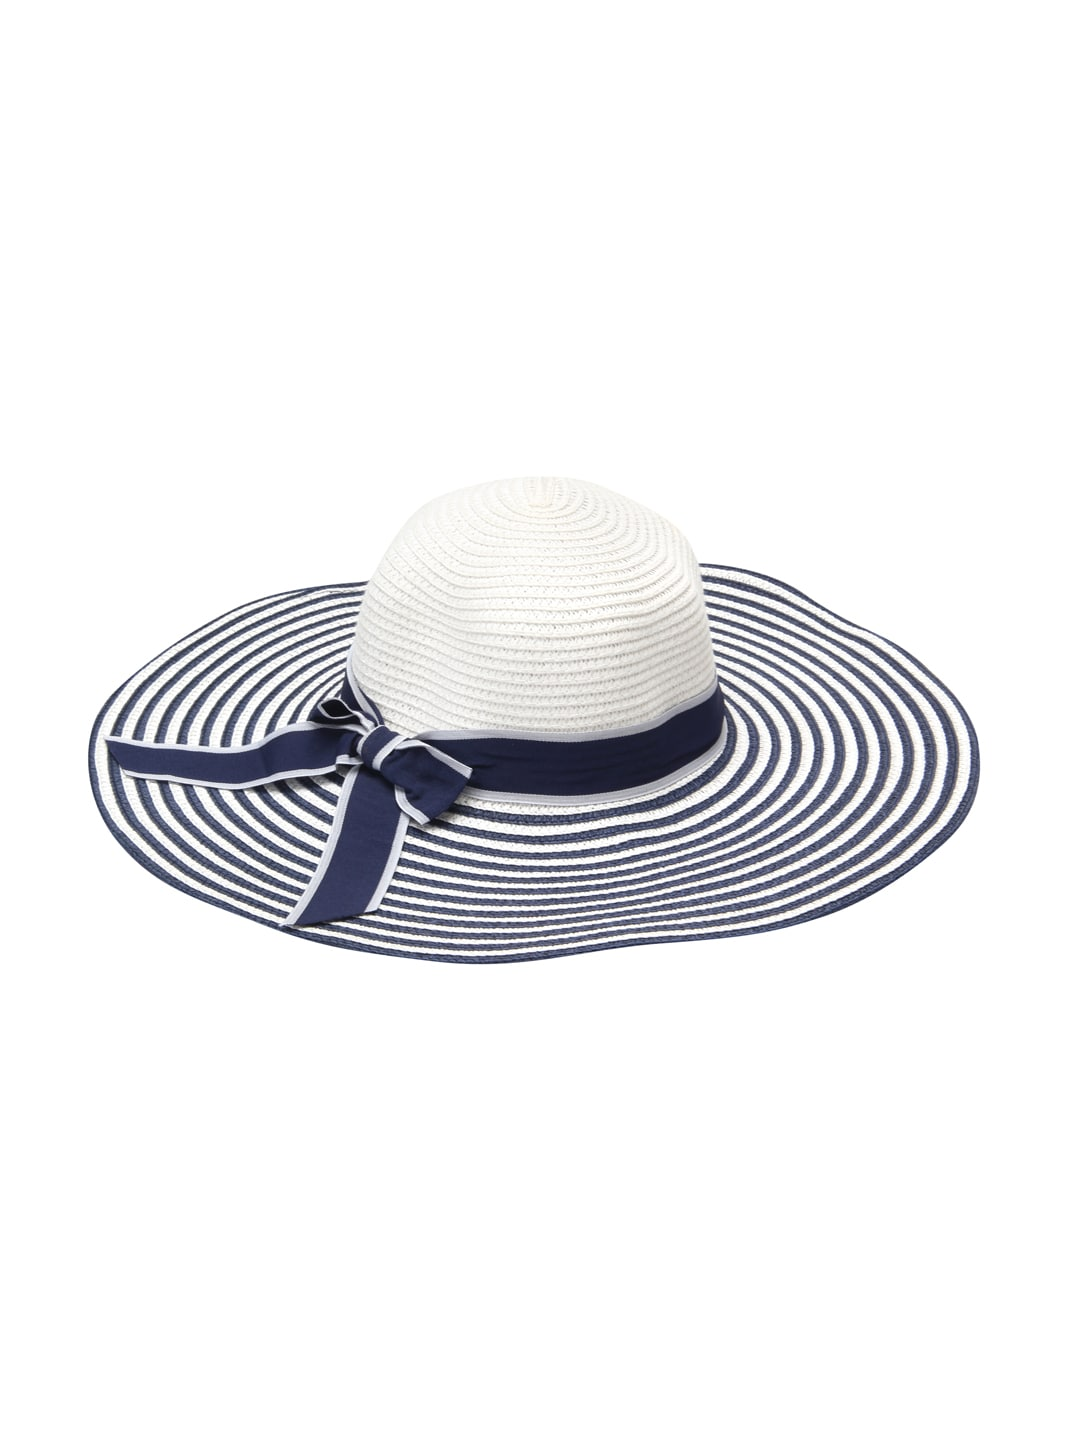 Buy FabSeasons Women Yellow   Blue Printed Bucket Hat - Hat for ... e9a402beed36